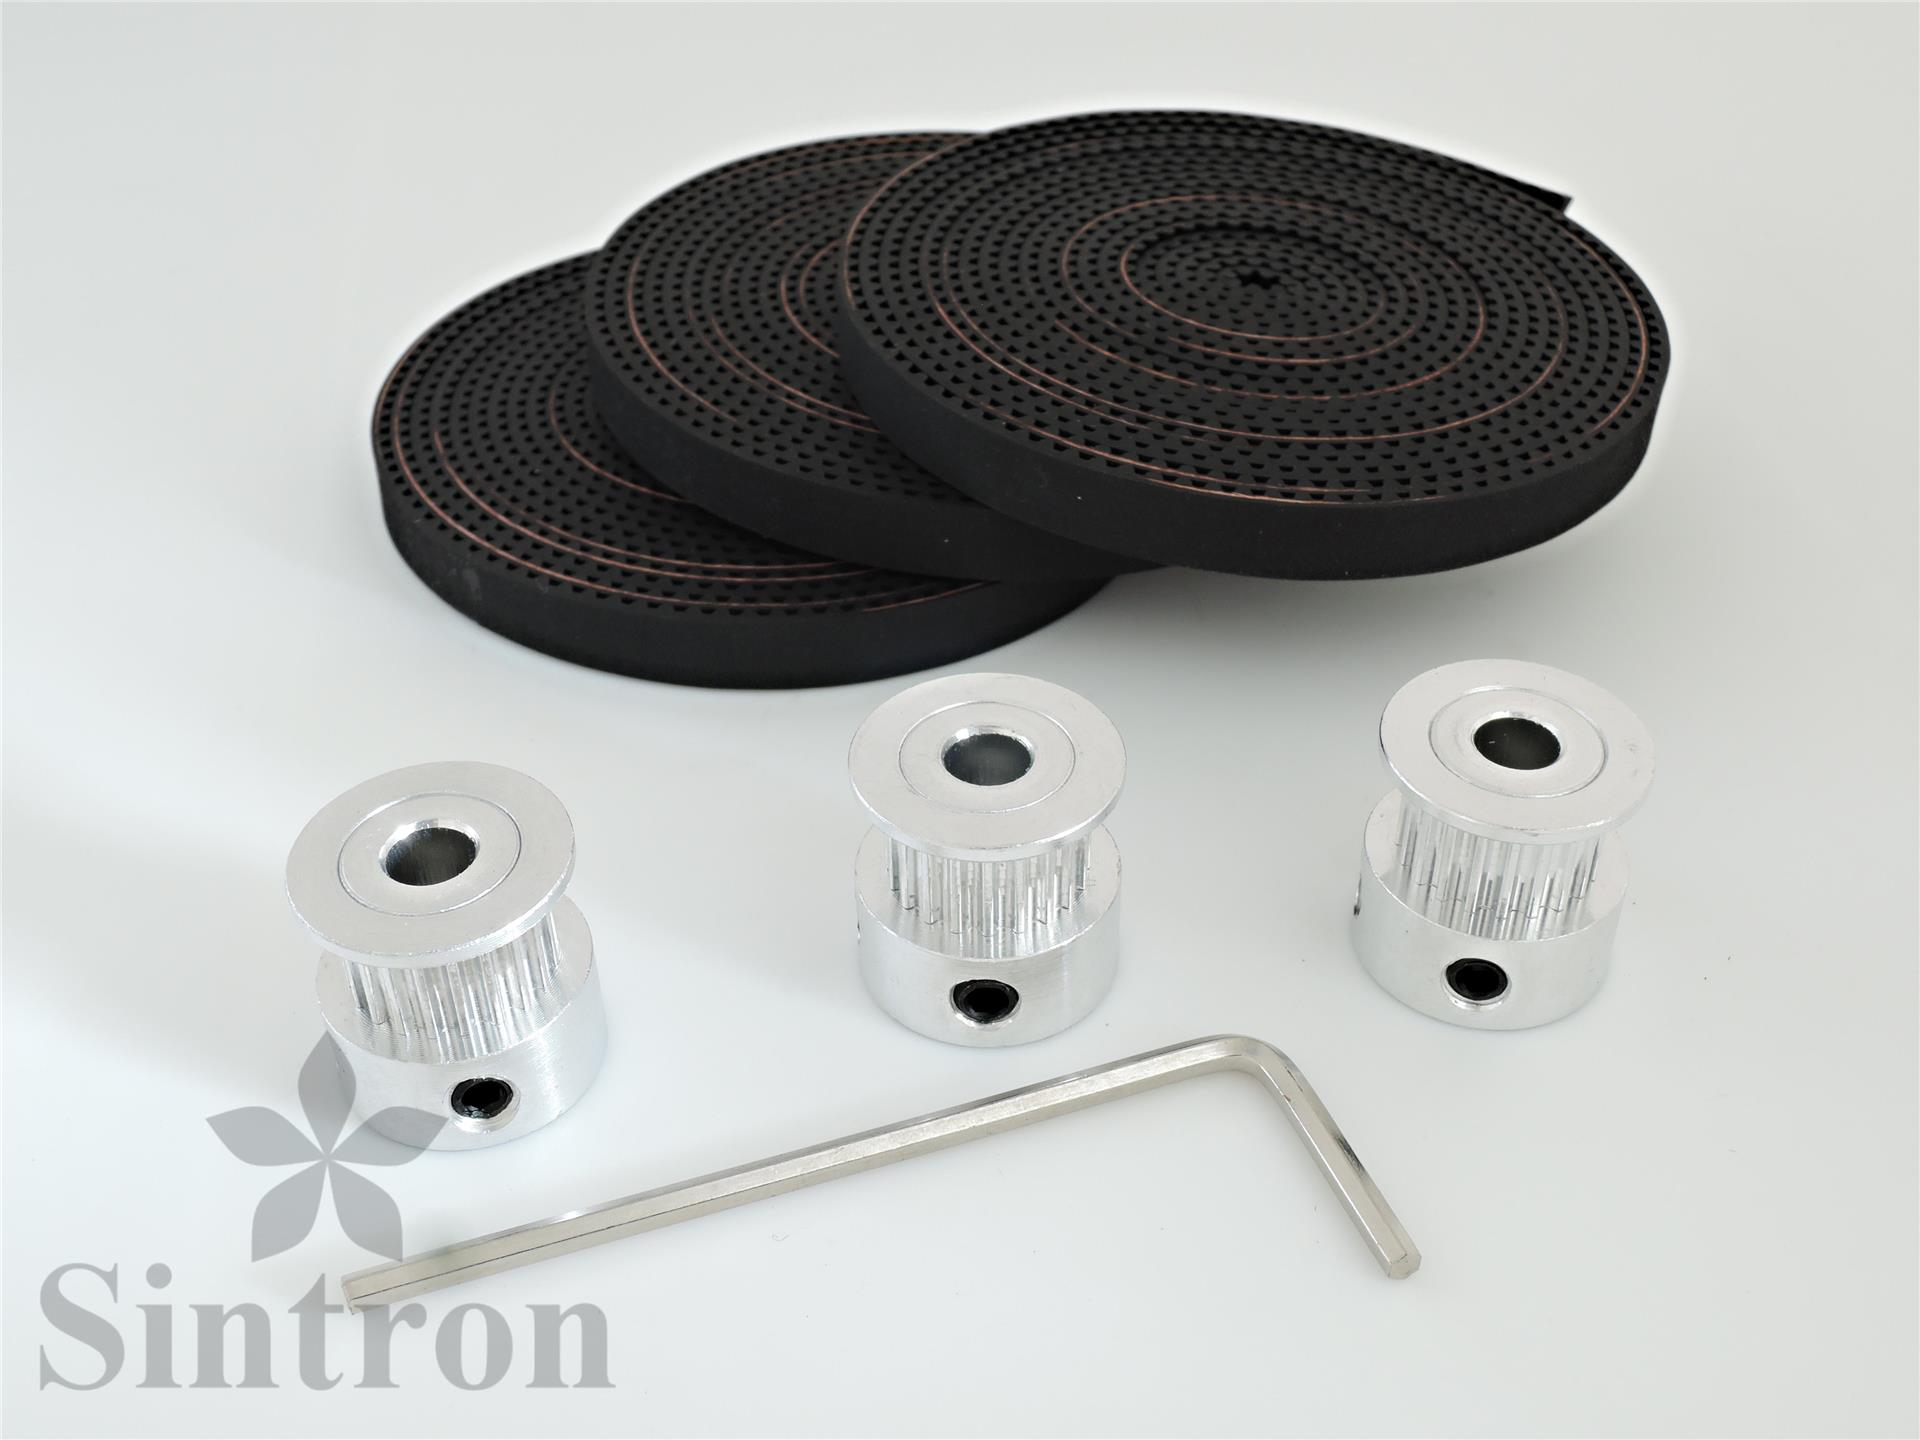 6x F623zz Bearing 3x 2m Belt Gt2 20 Tooth Pulley For Delta Rostock Mini Timing System Especially Suited Linear Movement And Positioning Applications